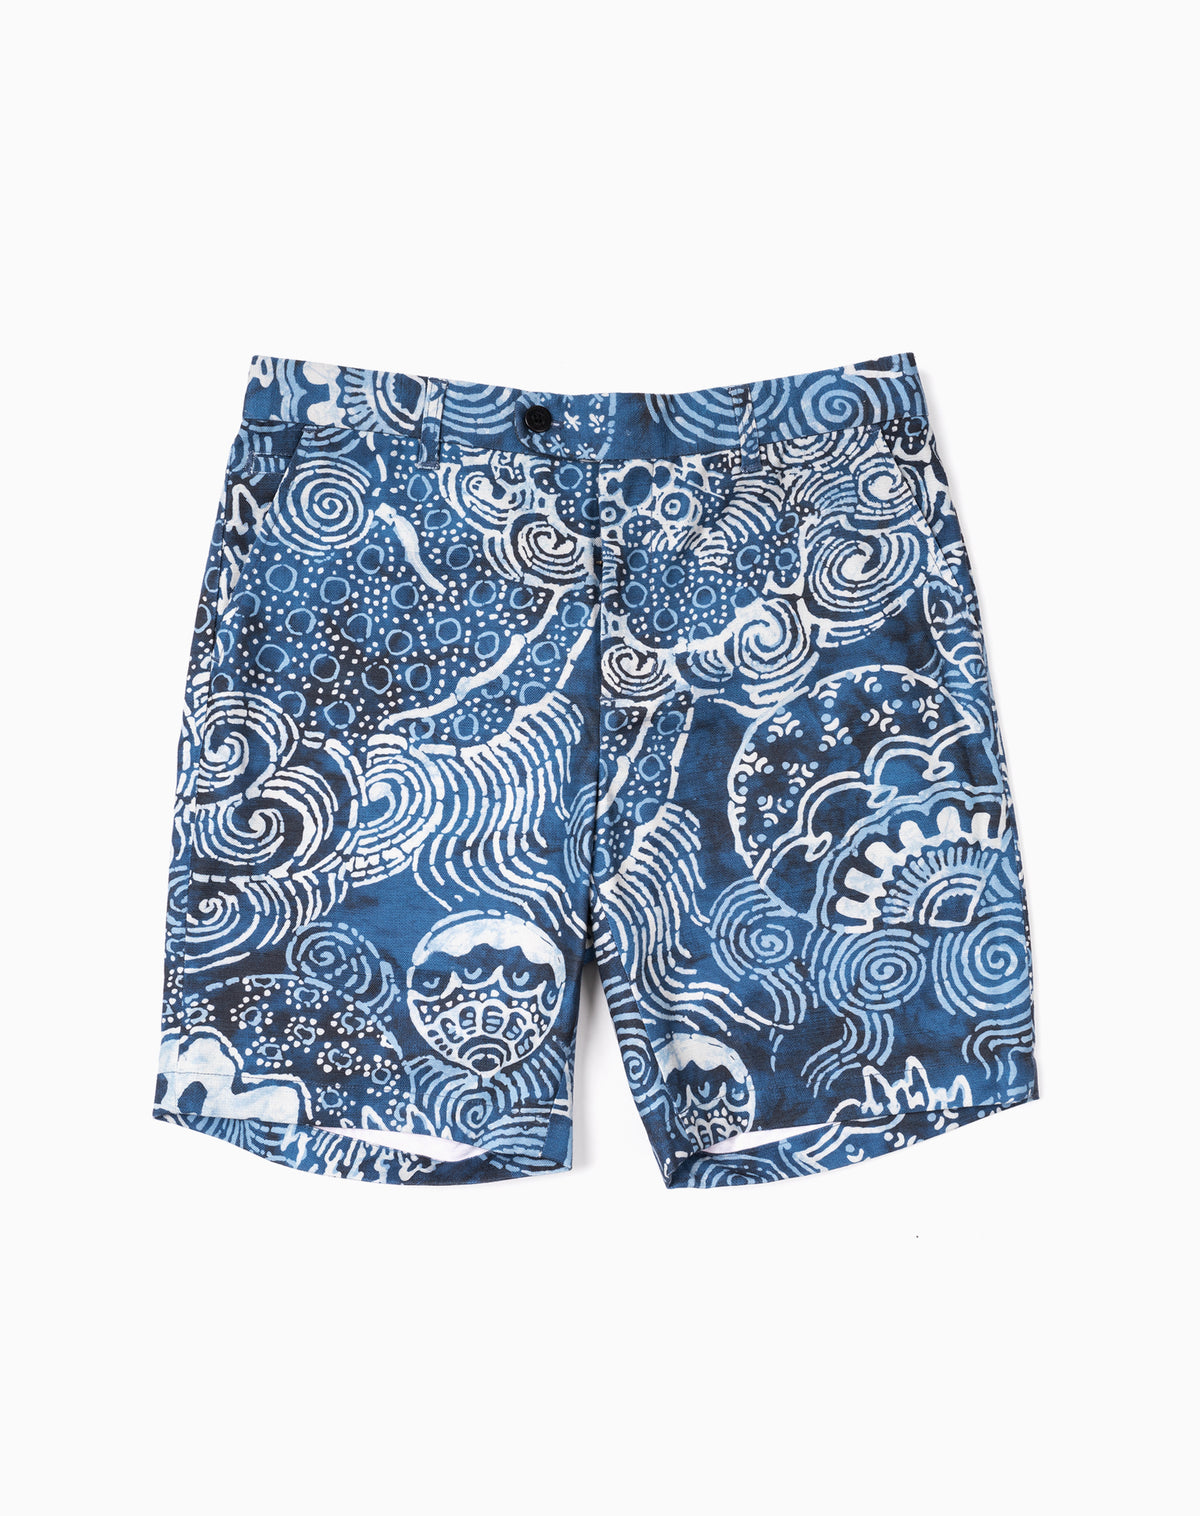 Printed Short in Indigo Bohai